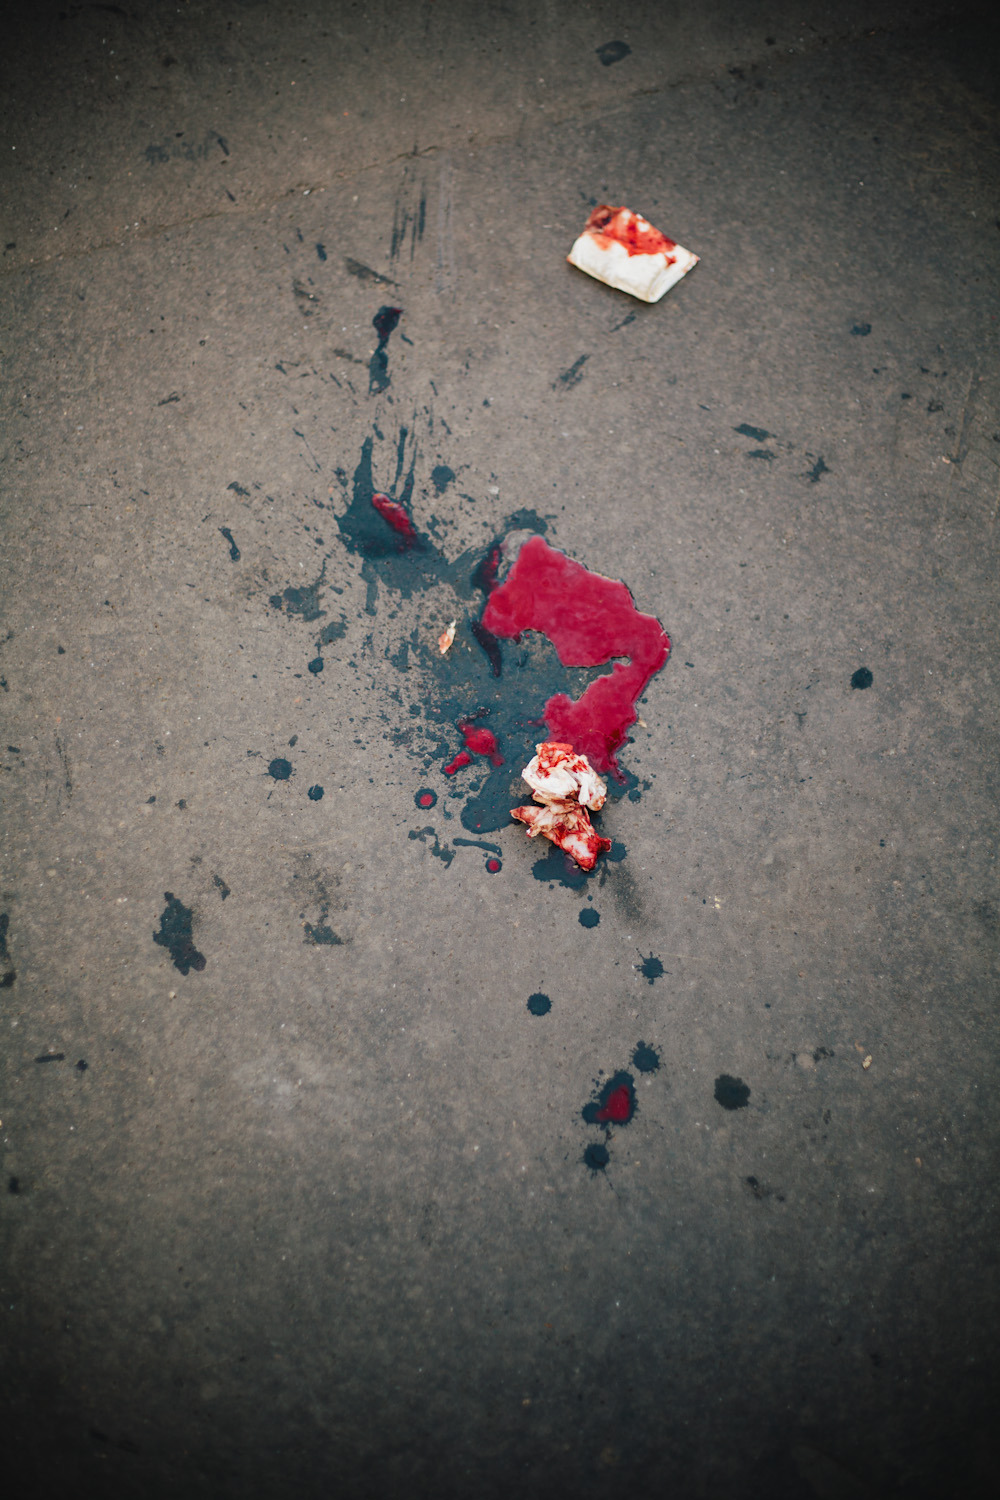 betoruizalonso:  Coagulated blood on Rue la Fayette, Paris. http://www.betoruizalonso.com/